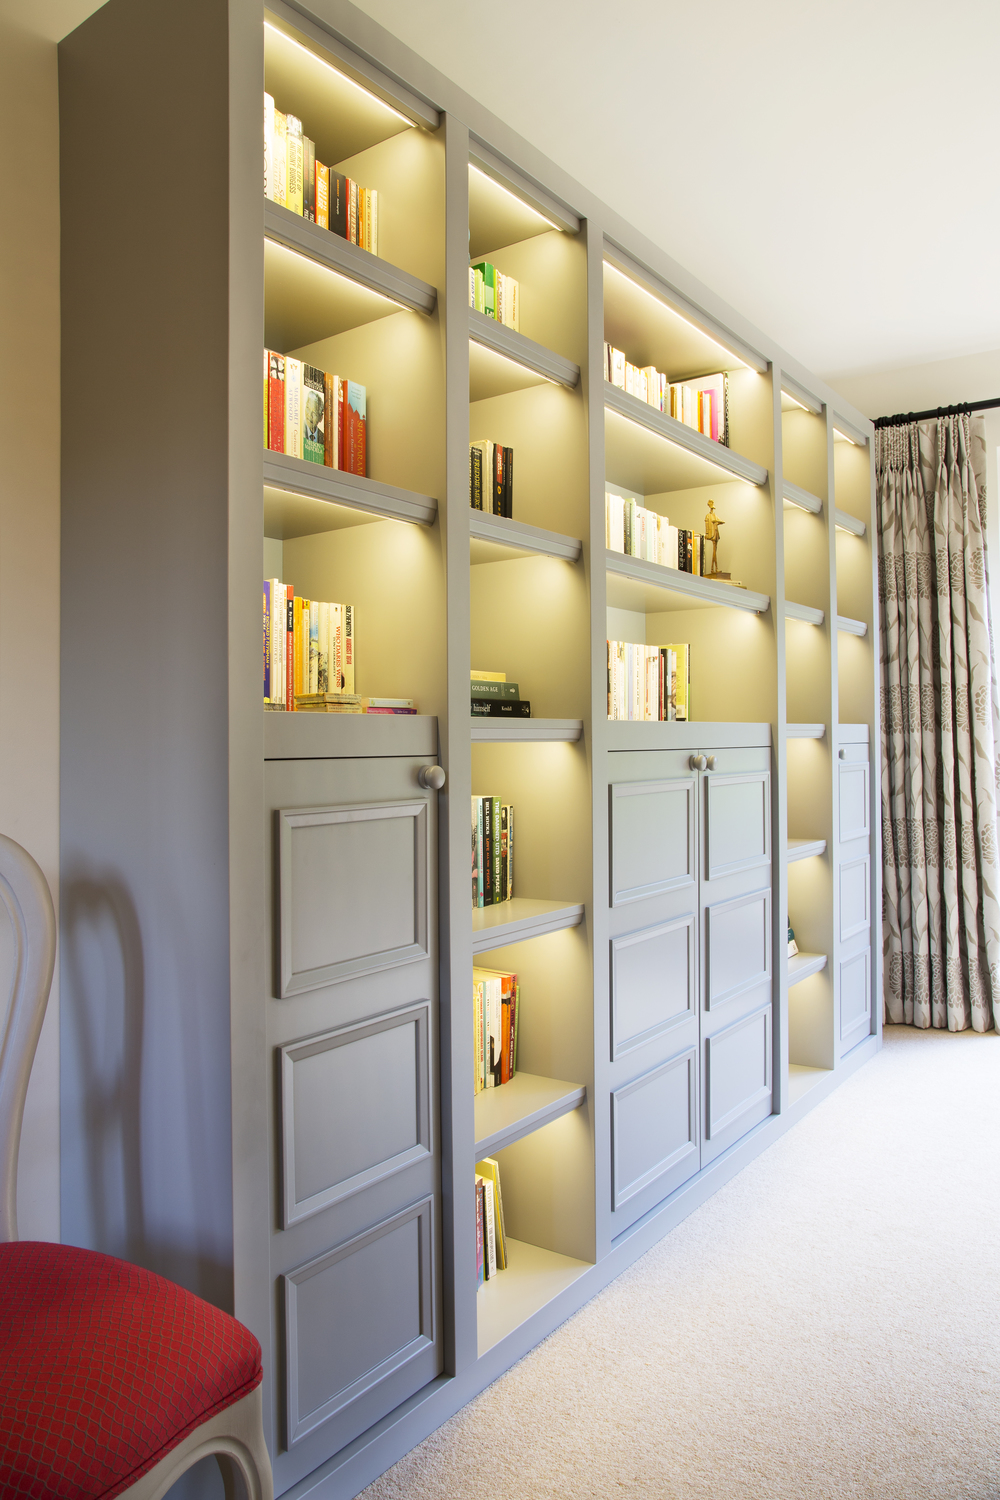 Sevenoaks Dining Room Design By Smartstyle Interiors Bespoke Bookshelf Part 57